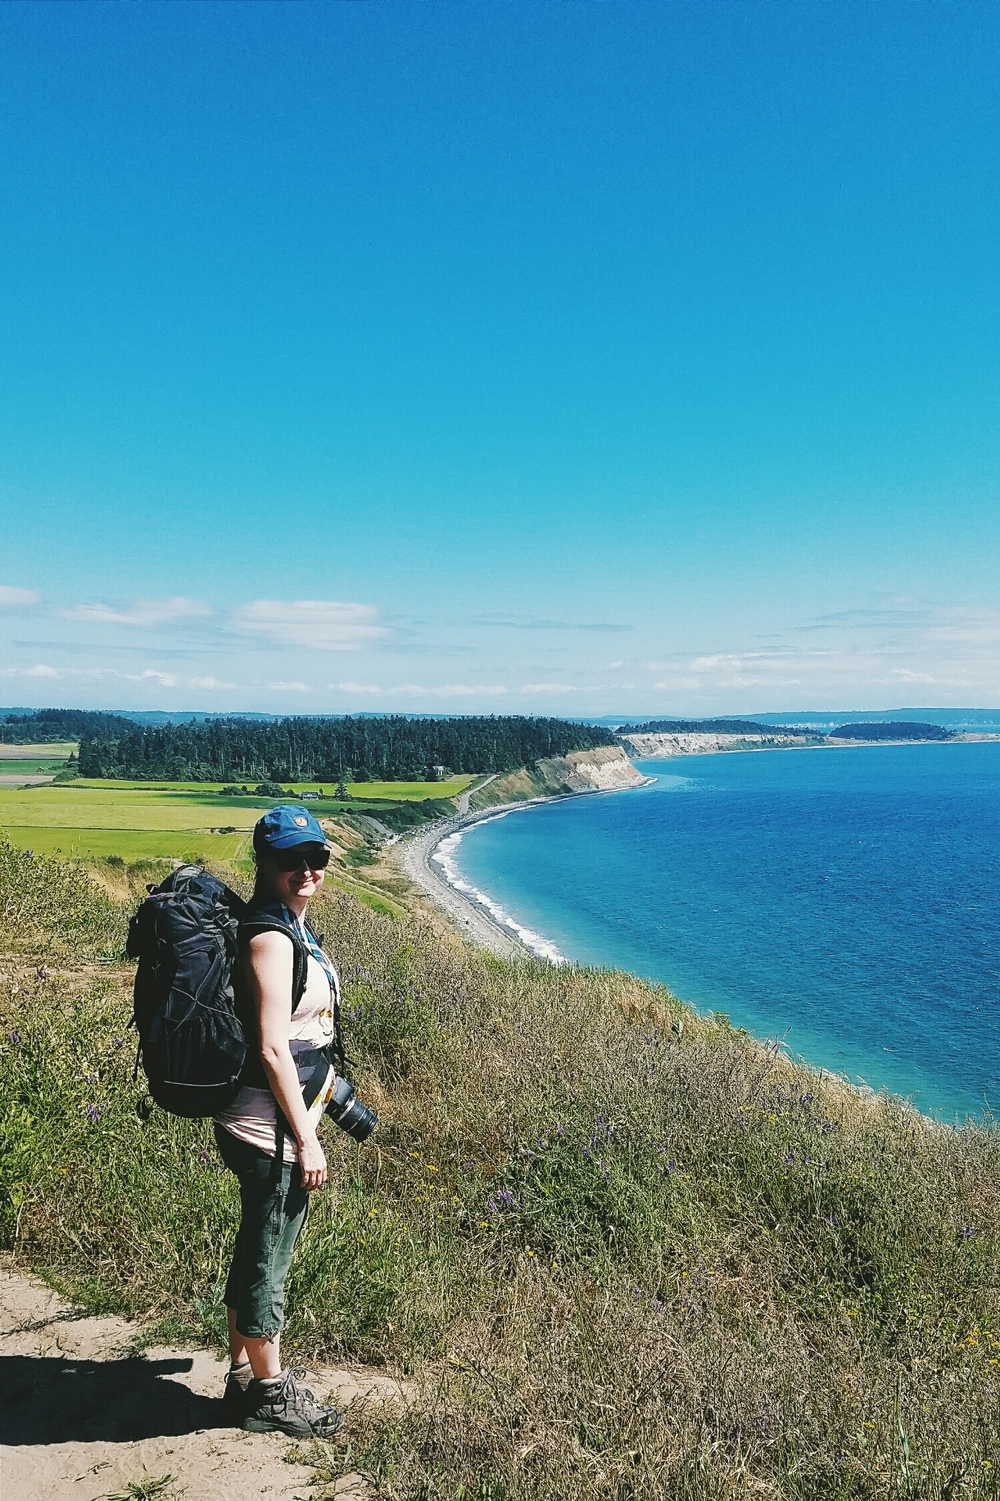 One last hike with my custom made ultralight backpack. Carrying anything over 15 lbs in this is REALLY uncomfortable.